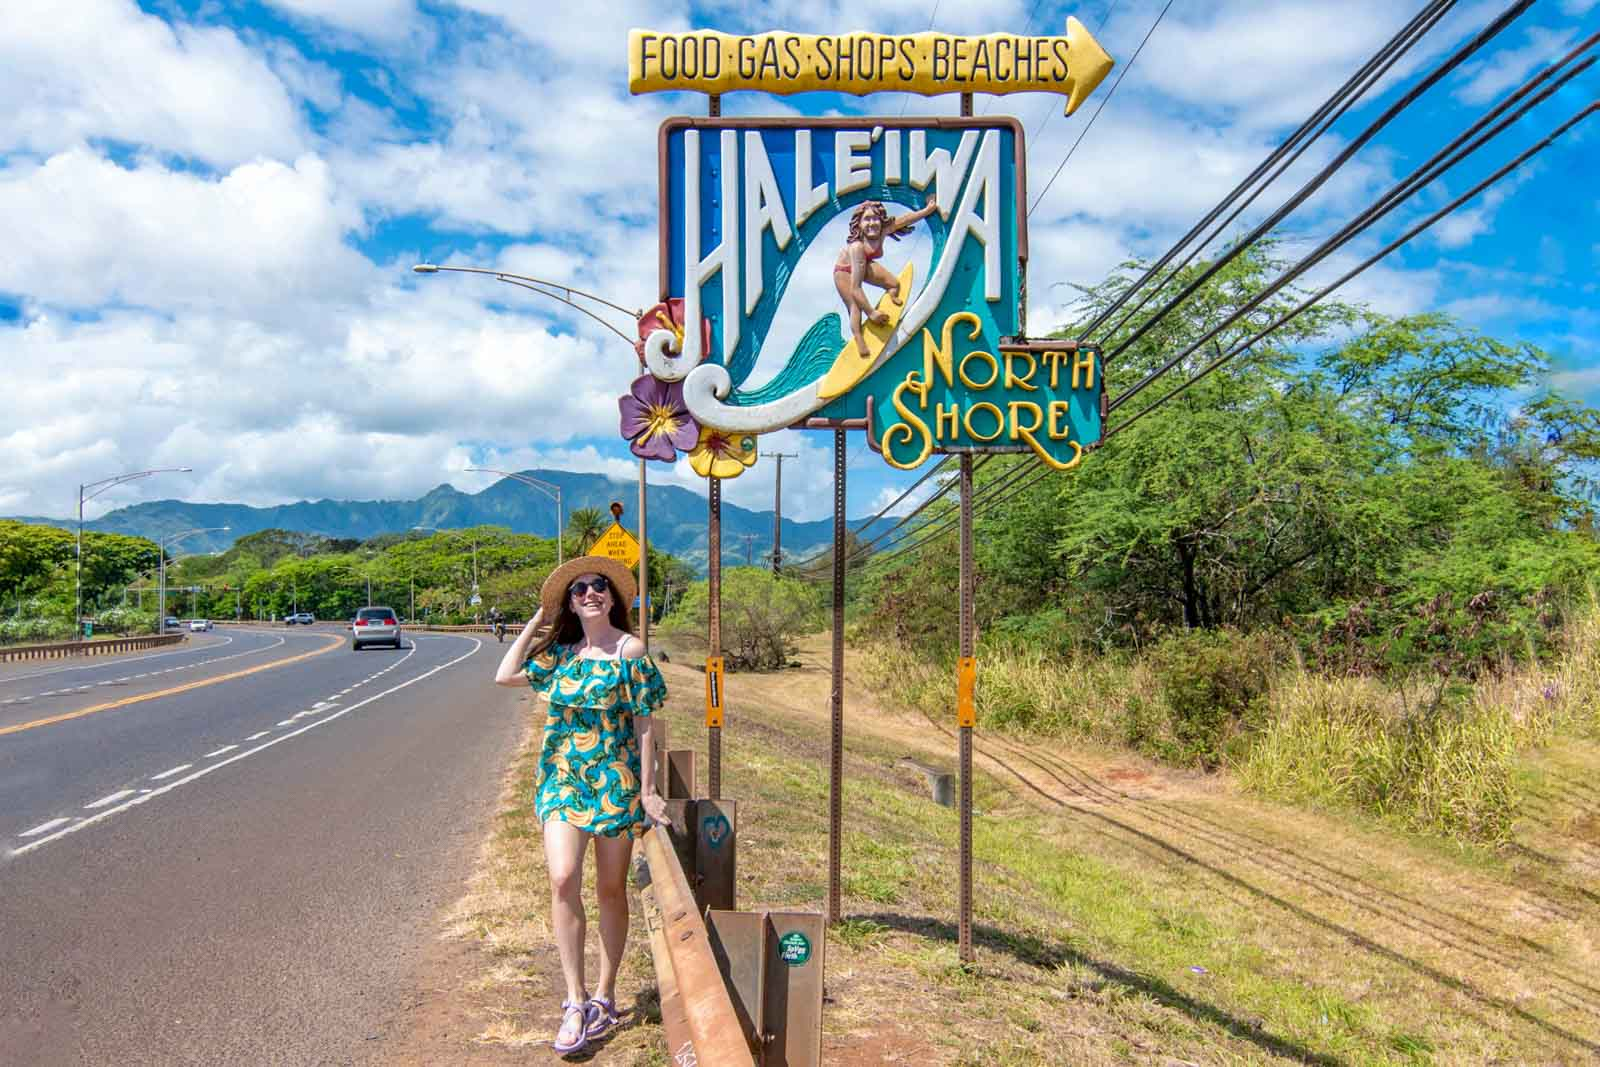 Woman posing for a picture in front of the Haleiwa surfer sign in Haleiwa Town, Oahu.